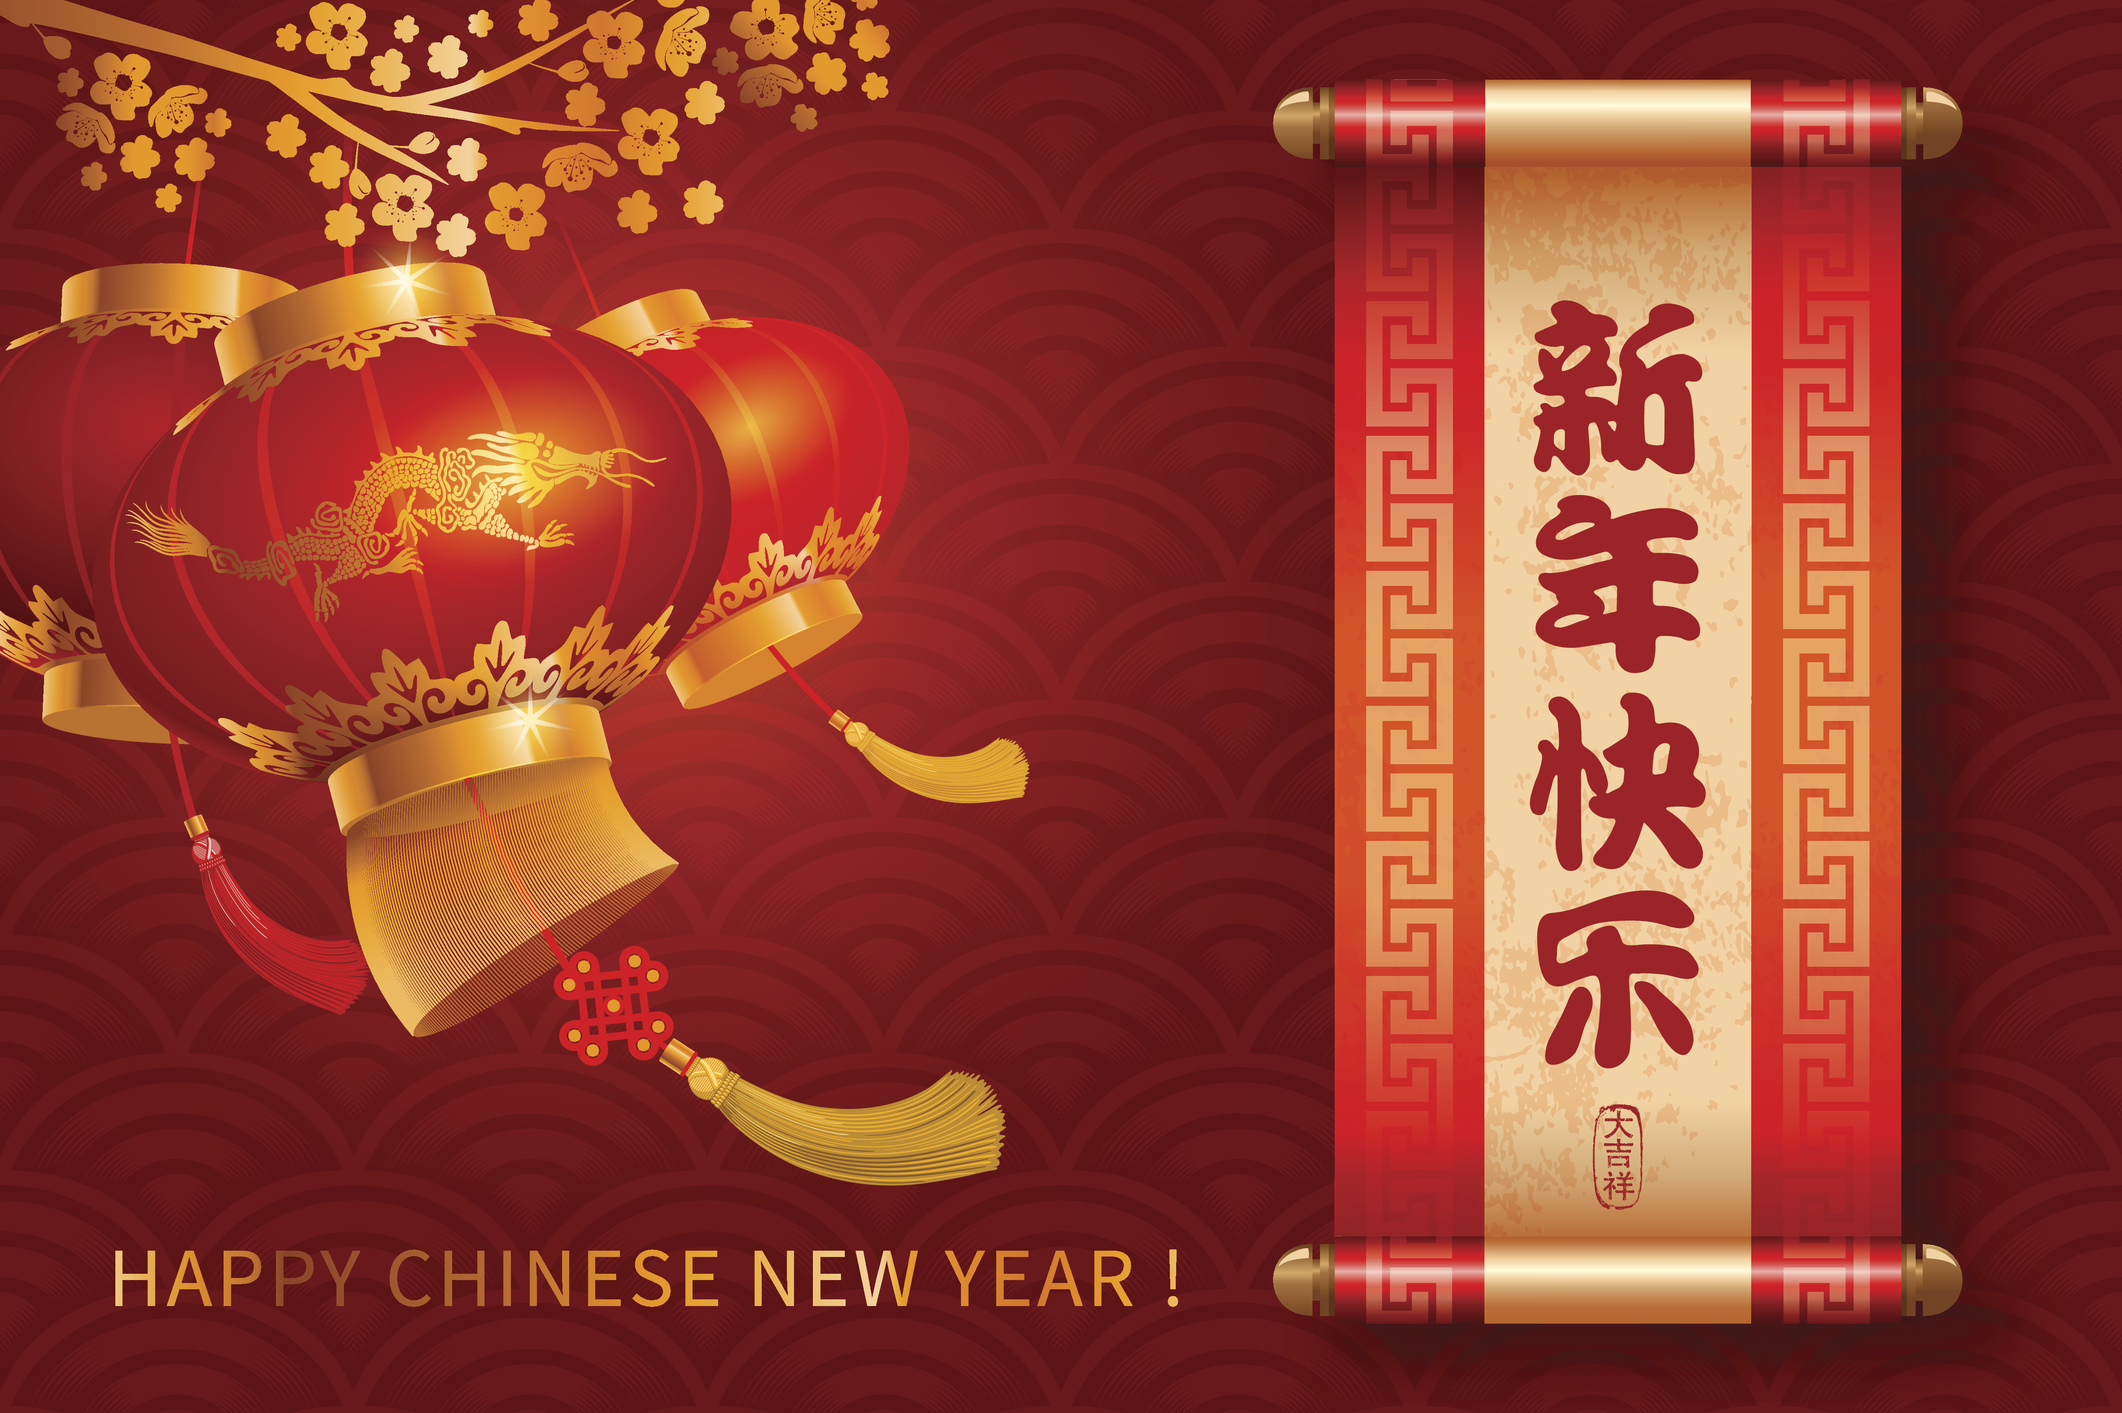 Chinese New Year Full HD Wallpaper and Background 2122x1413